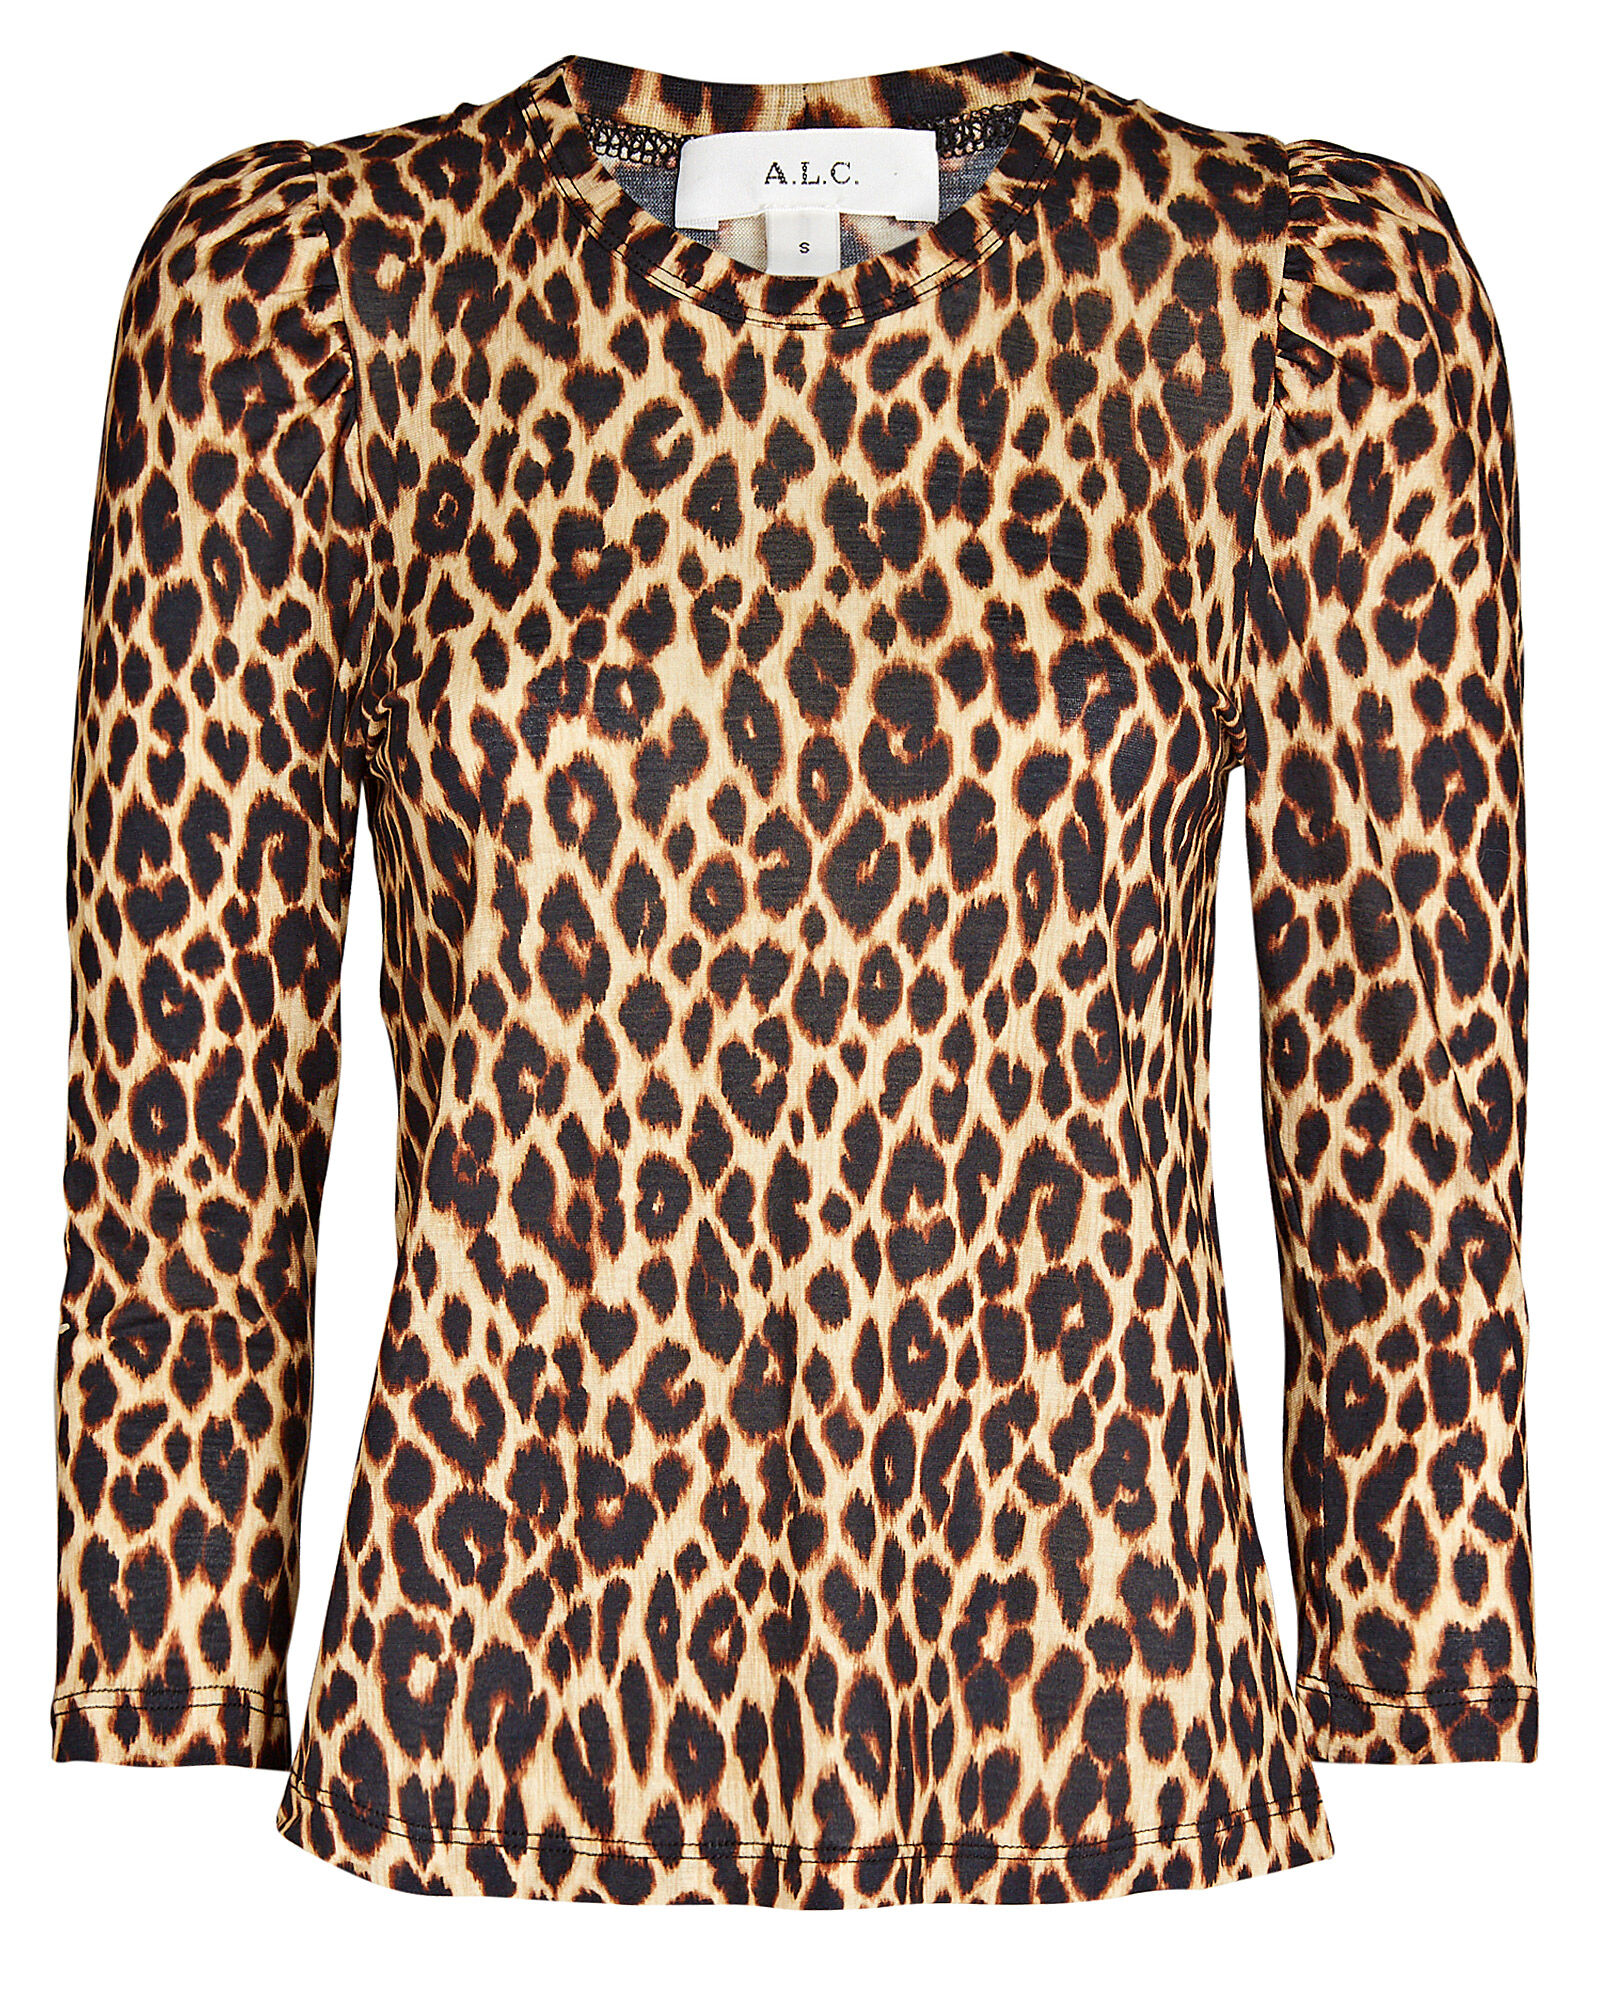 New Rixo London Leopard Print Jane Top In Blue Sz S